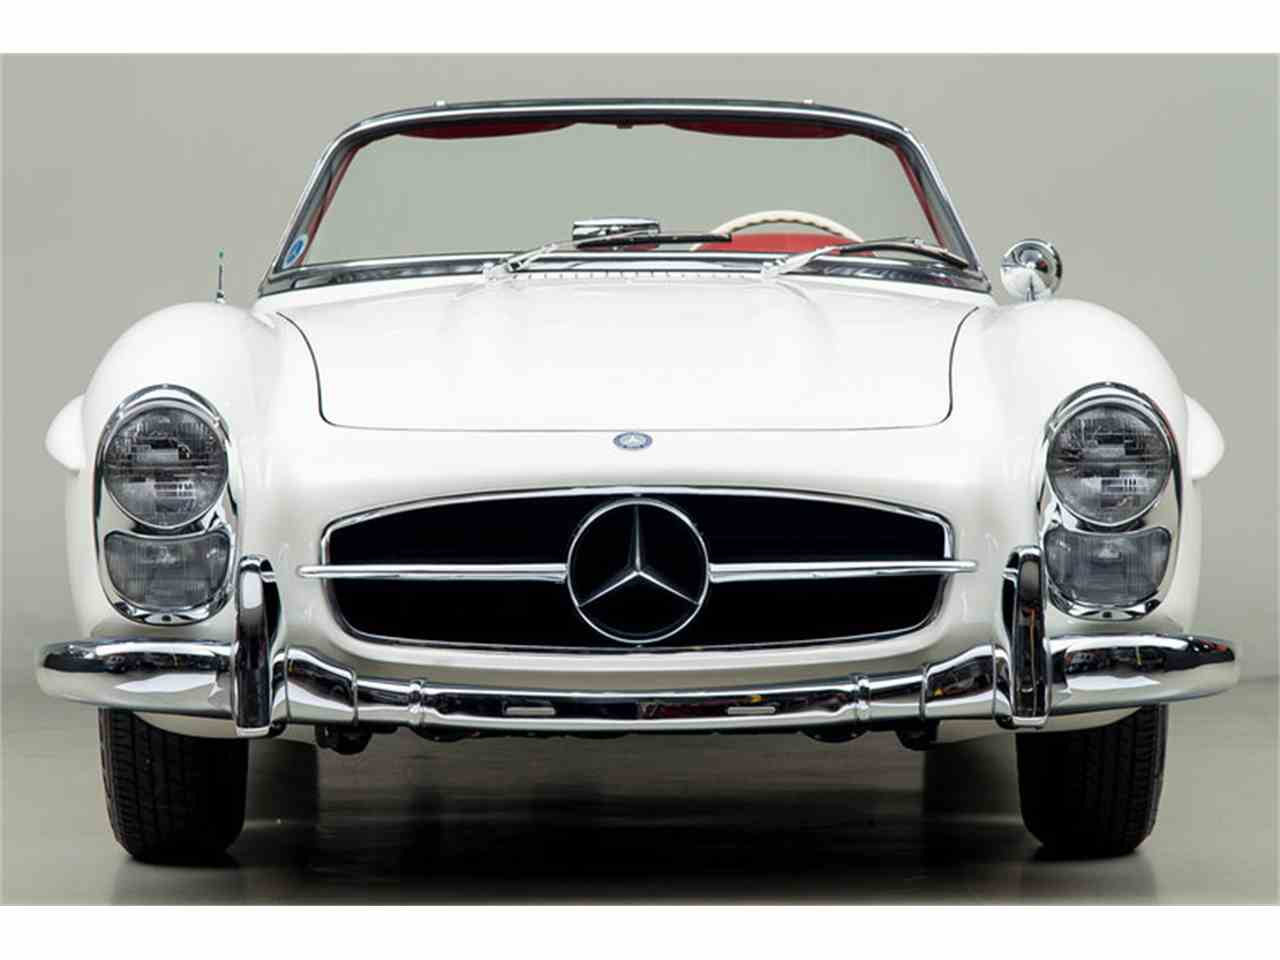 1963 mercedes benz 300sl roadster for sale classiccars for 1963 mercedes benz